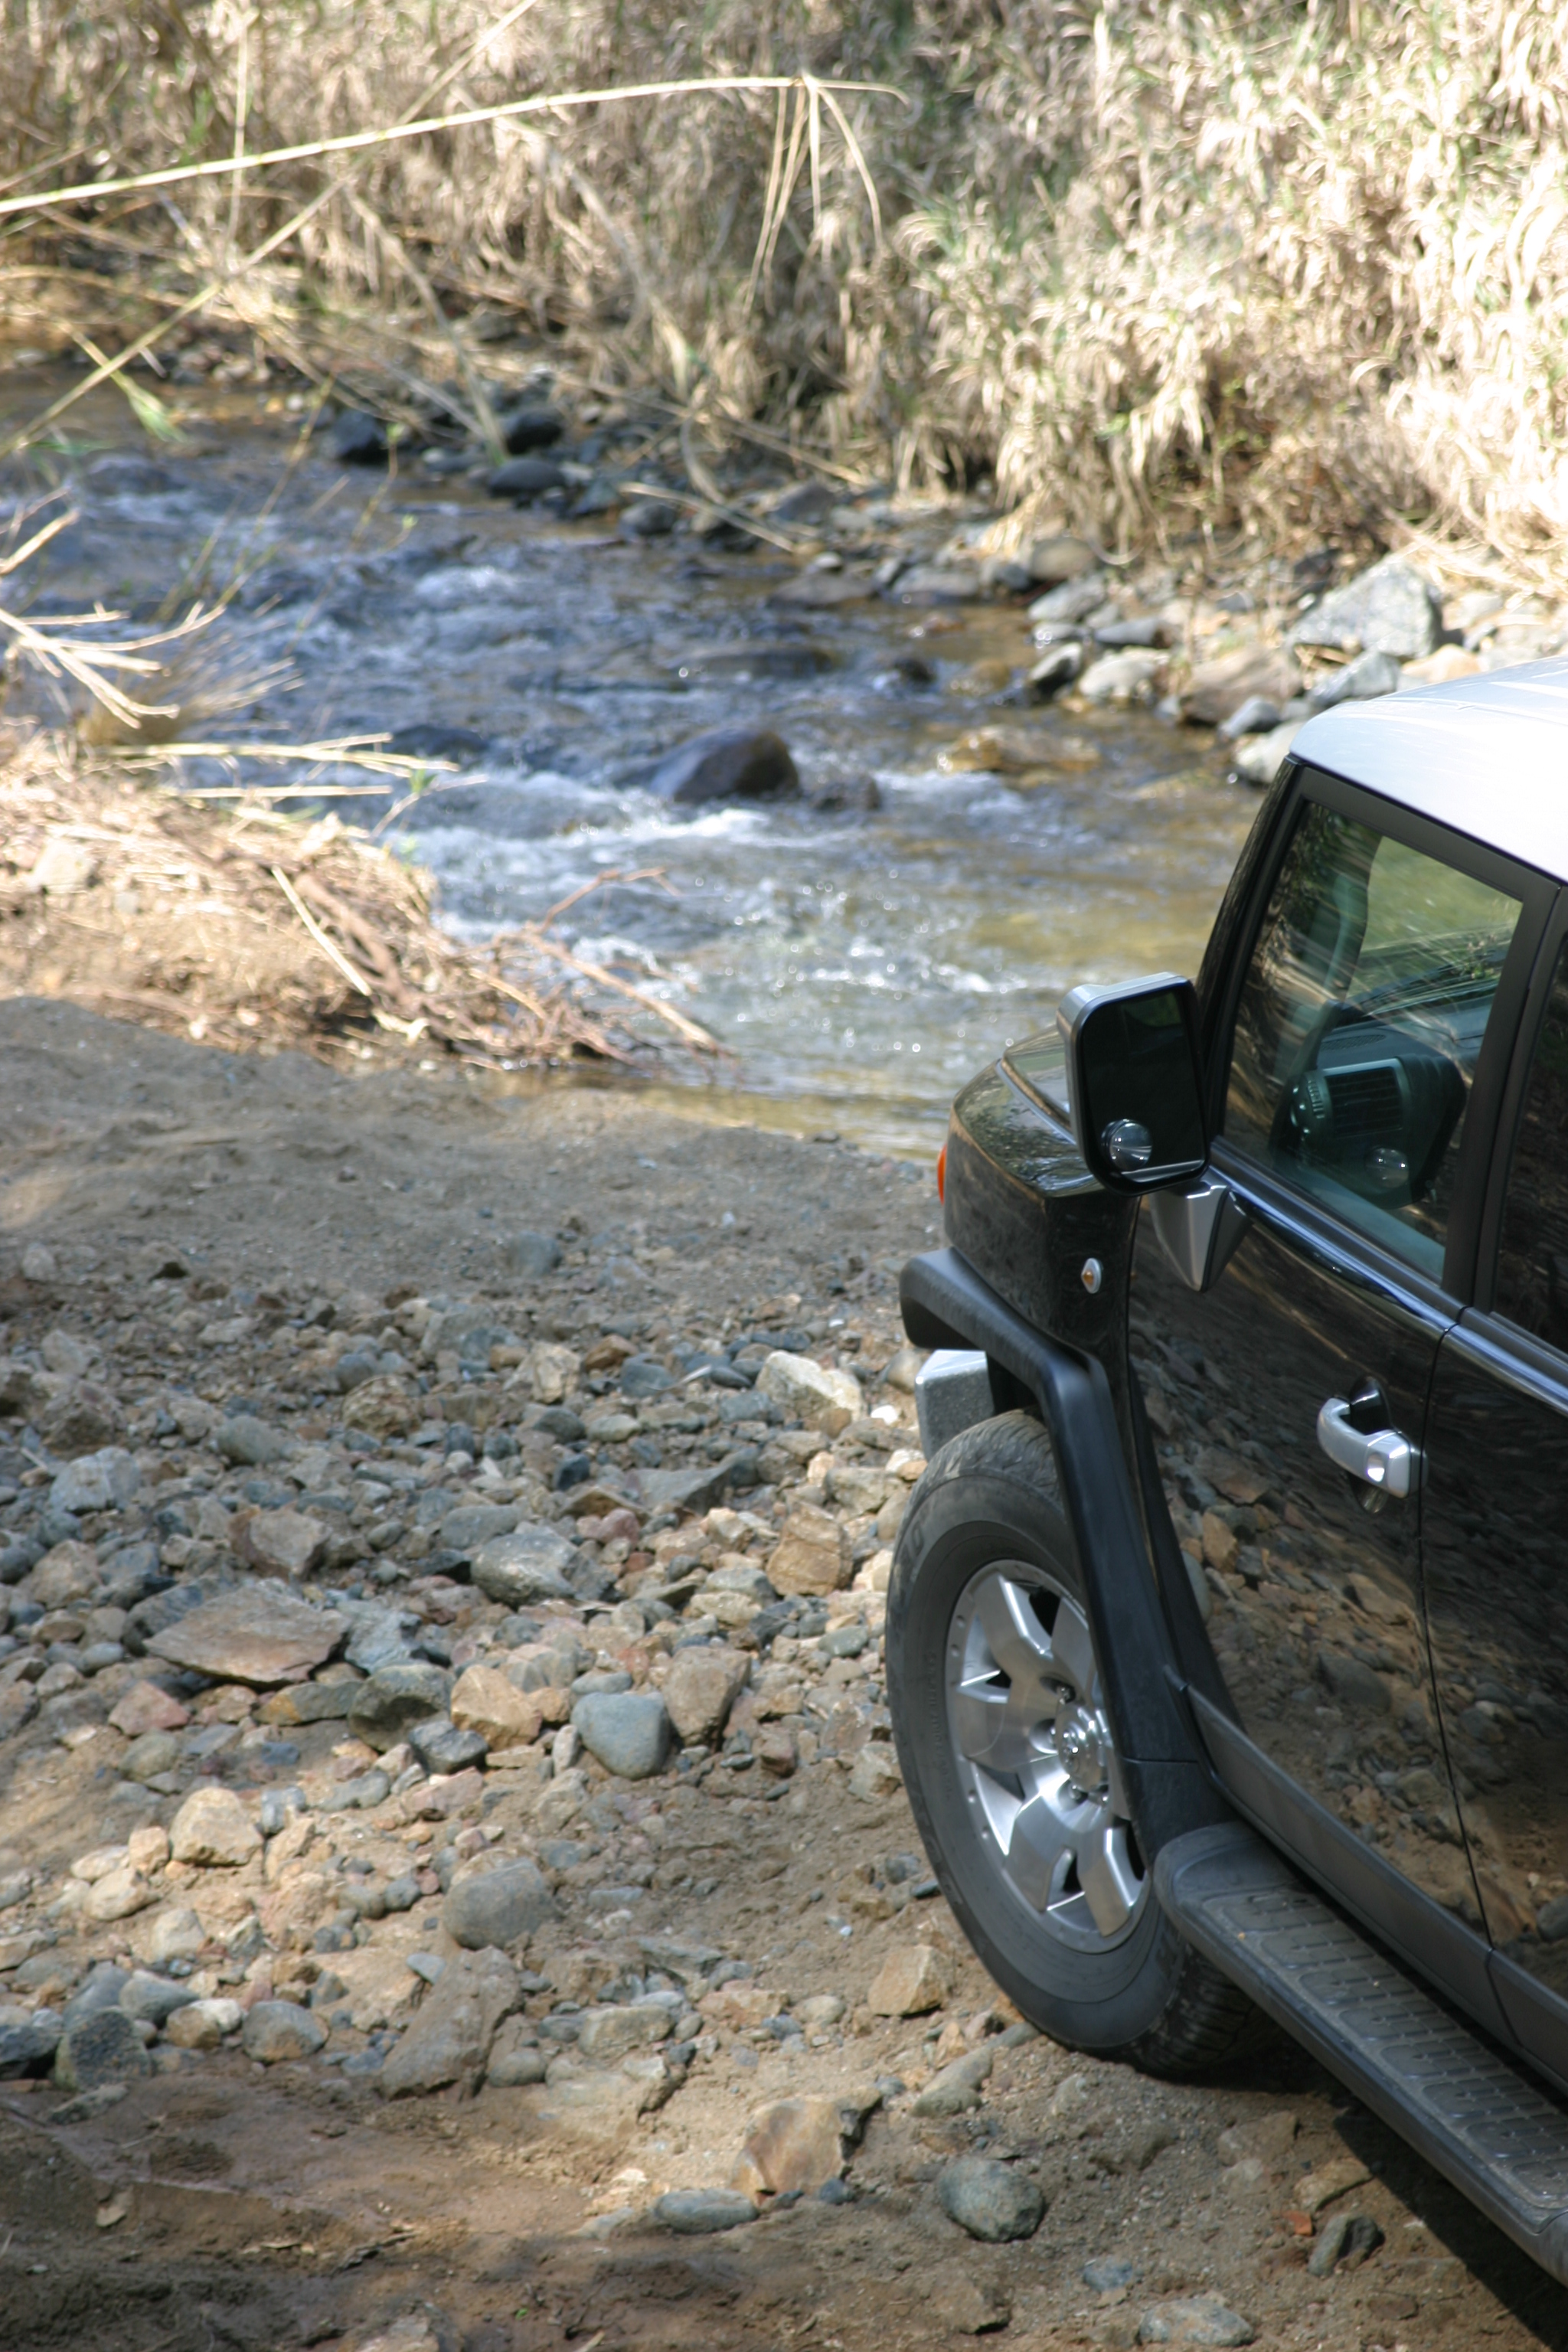 FJ Cruiser by river in la mairena